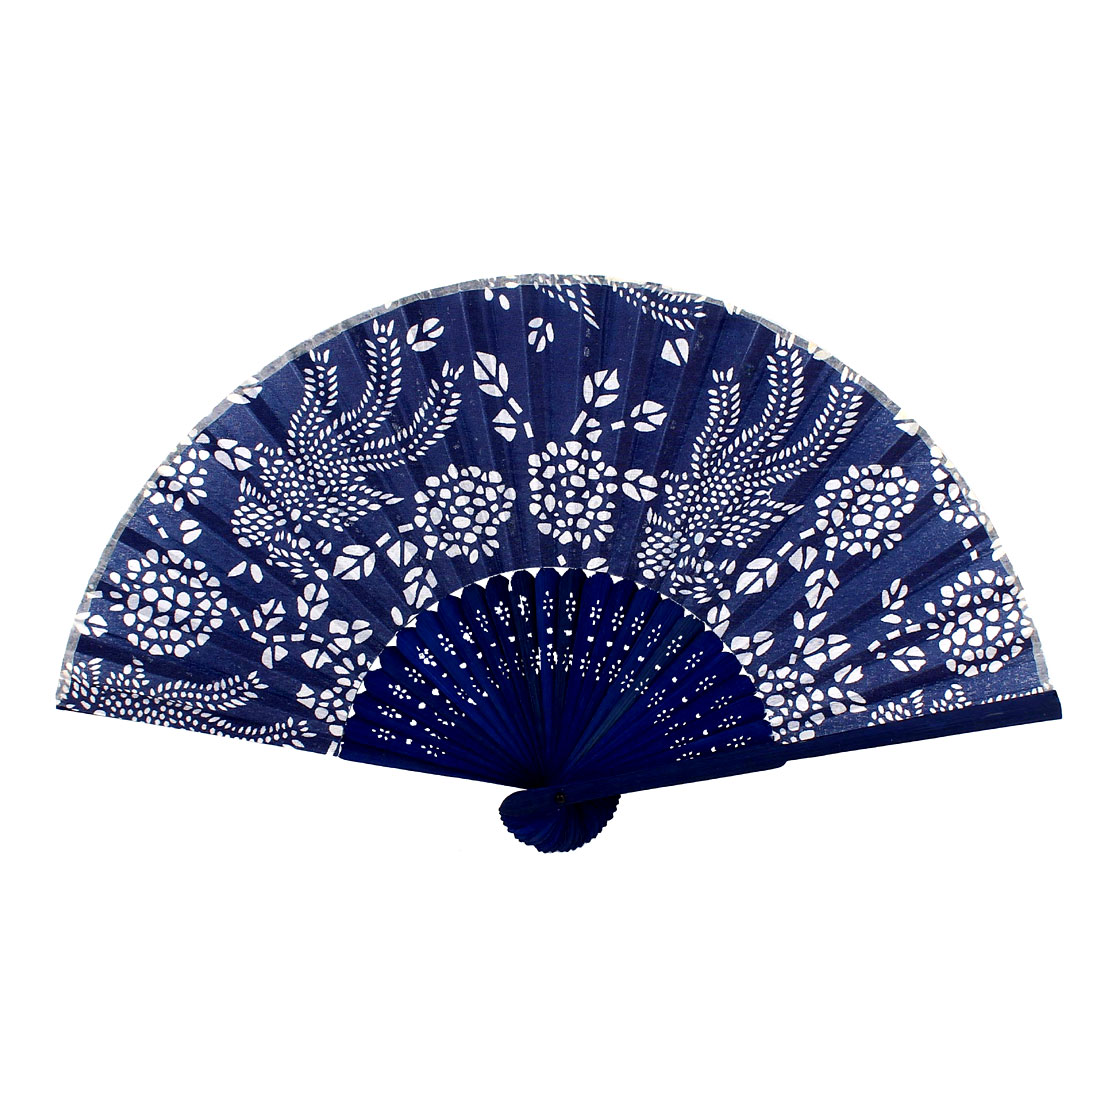 Wedding Party Flower Pattern Hollow Out Bamboo Rib Fabric Folding Hand Fan Blue